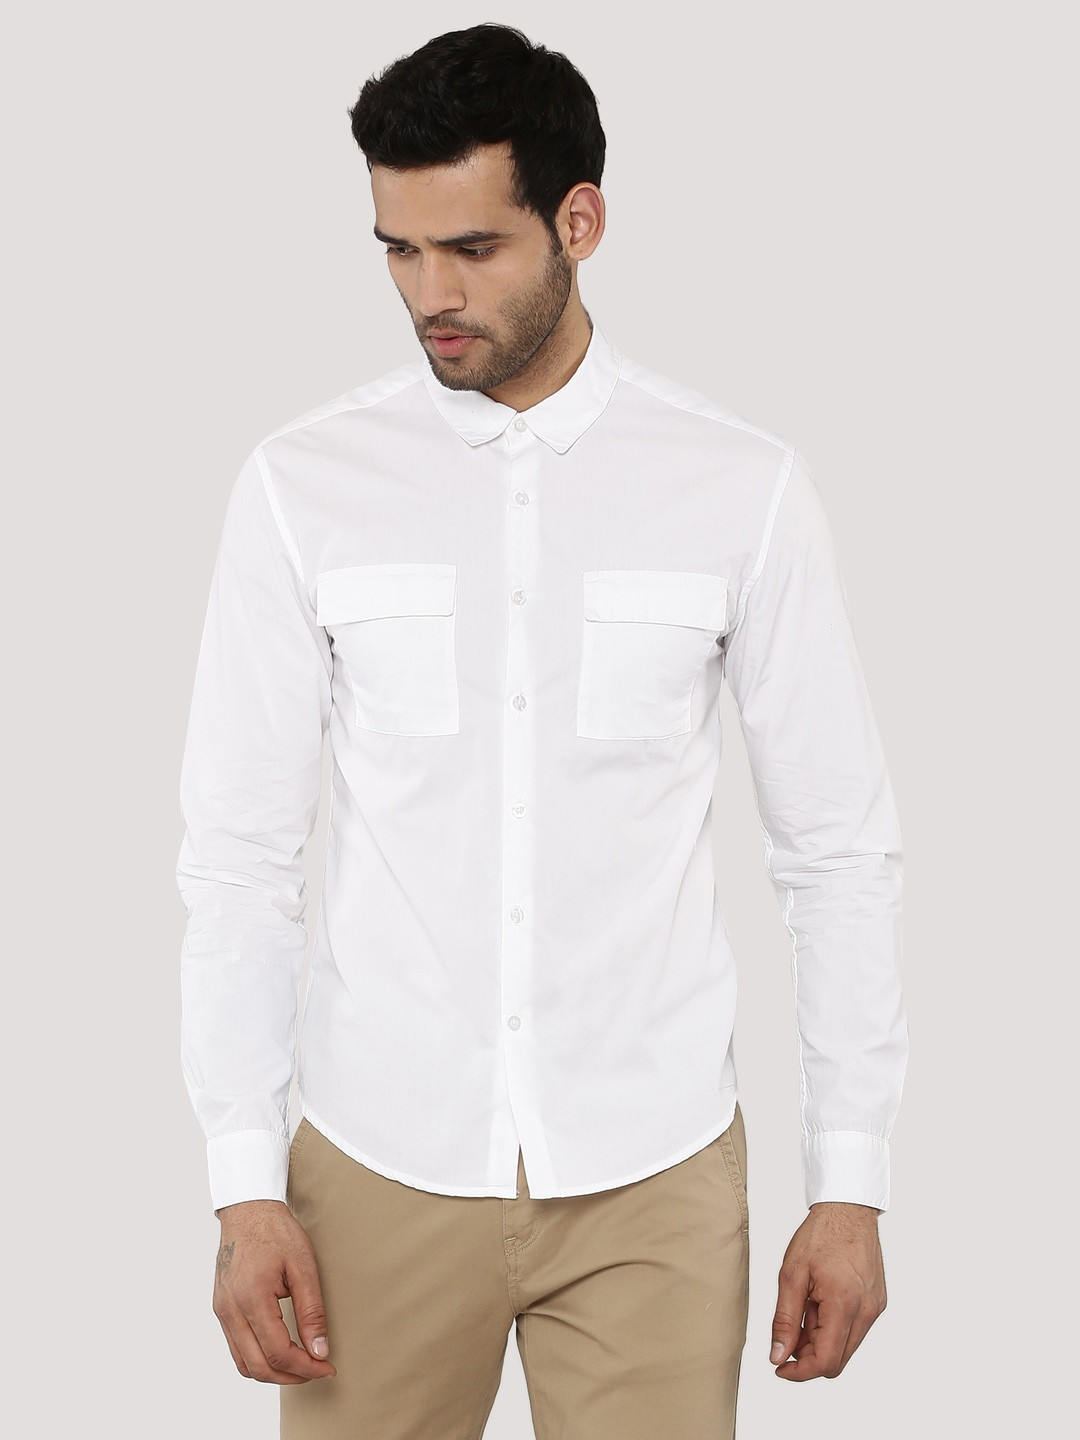 Men's Off White Color Shirts - Buy Off White Color Shirts for Men ...